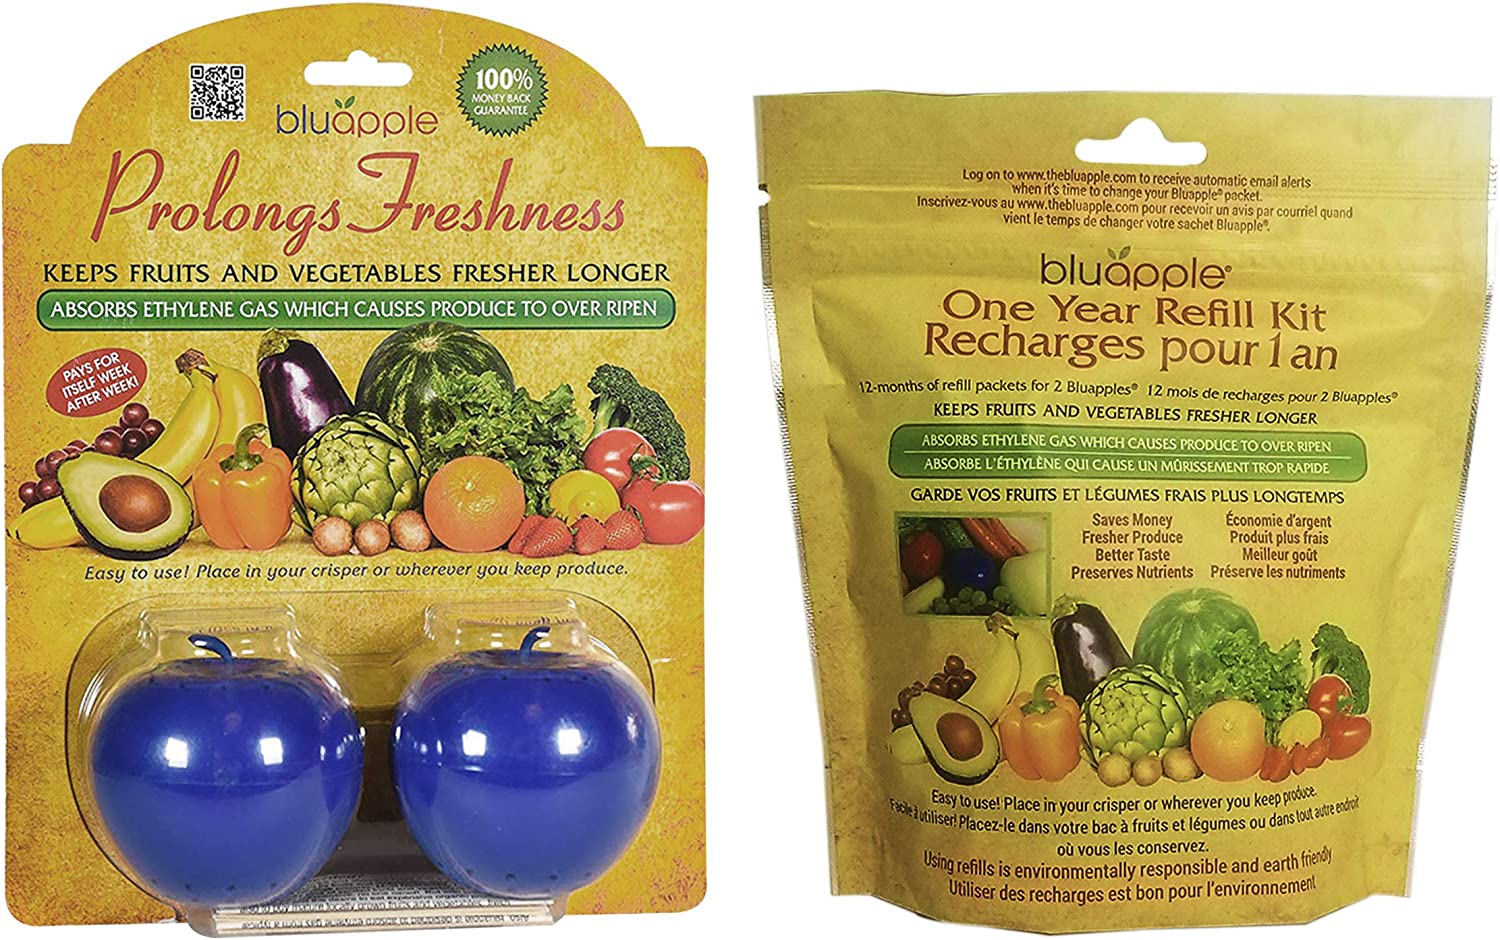 Bluapple Blue Produce Freshness Balls Fresh Extender + One-Year Refill Kit 15 Months Pack Absorb Ethylene Gas